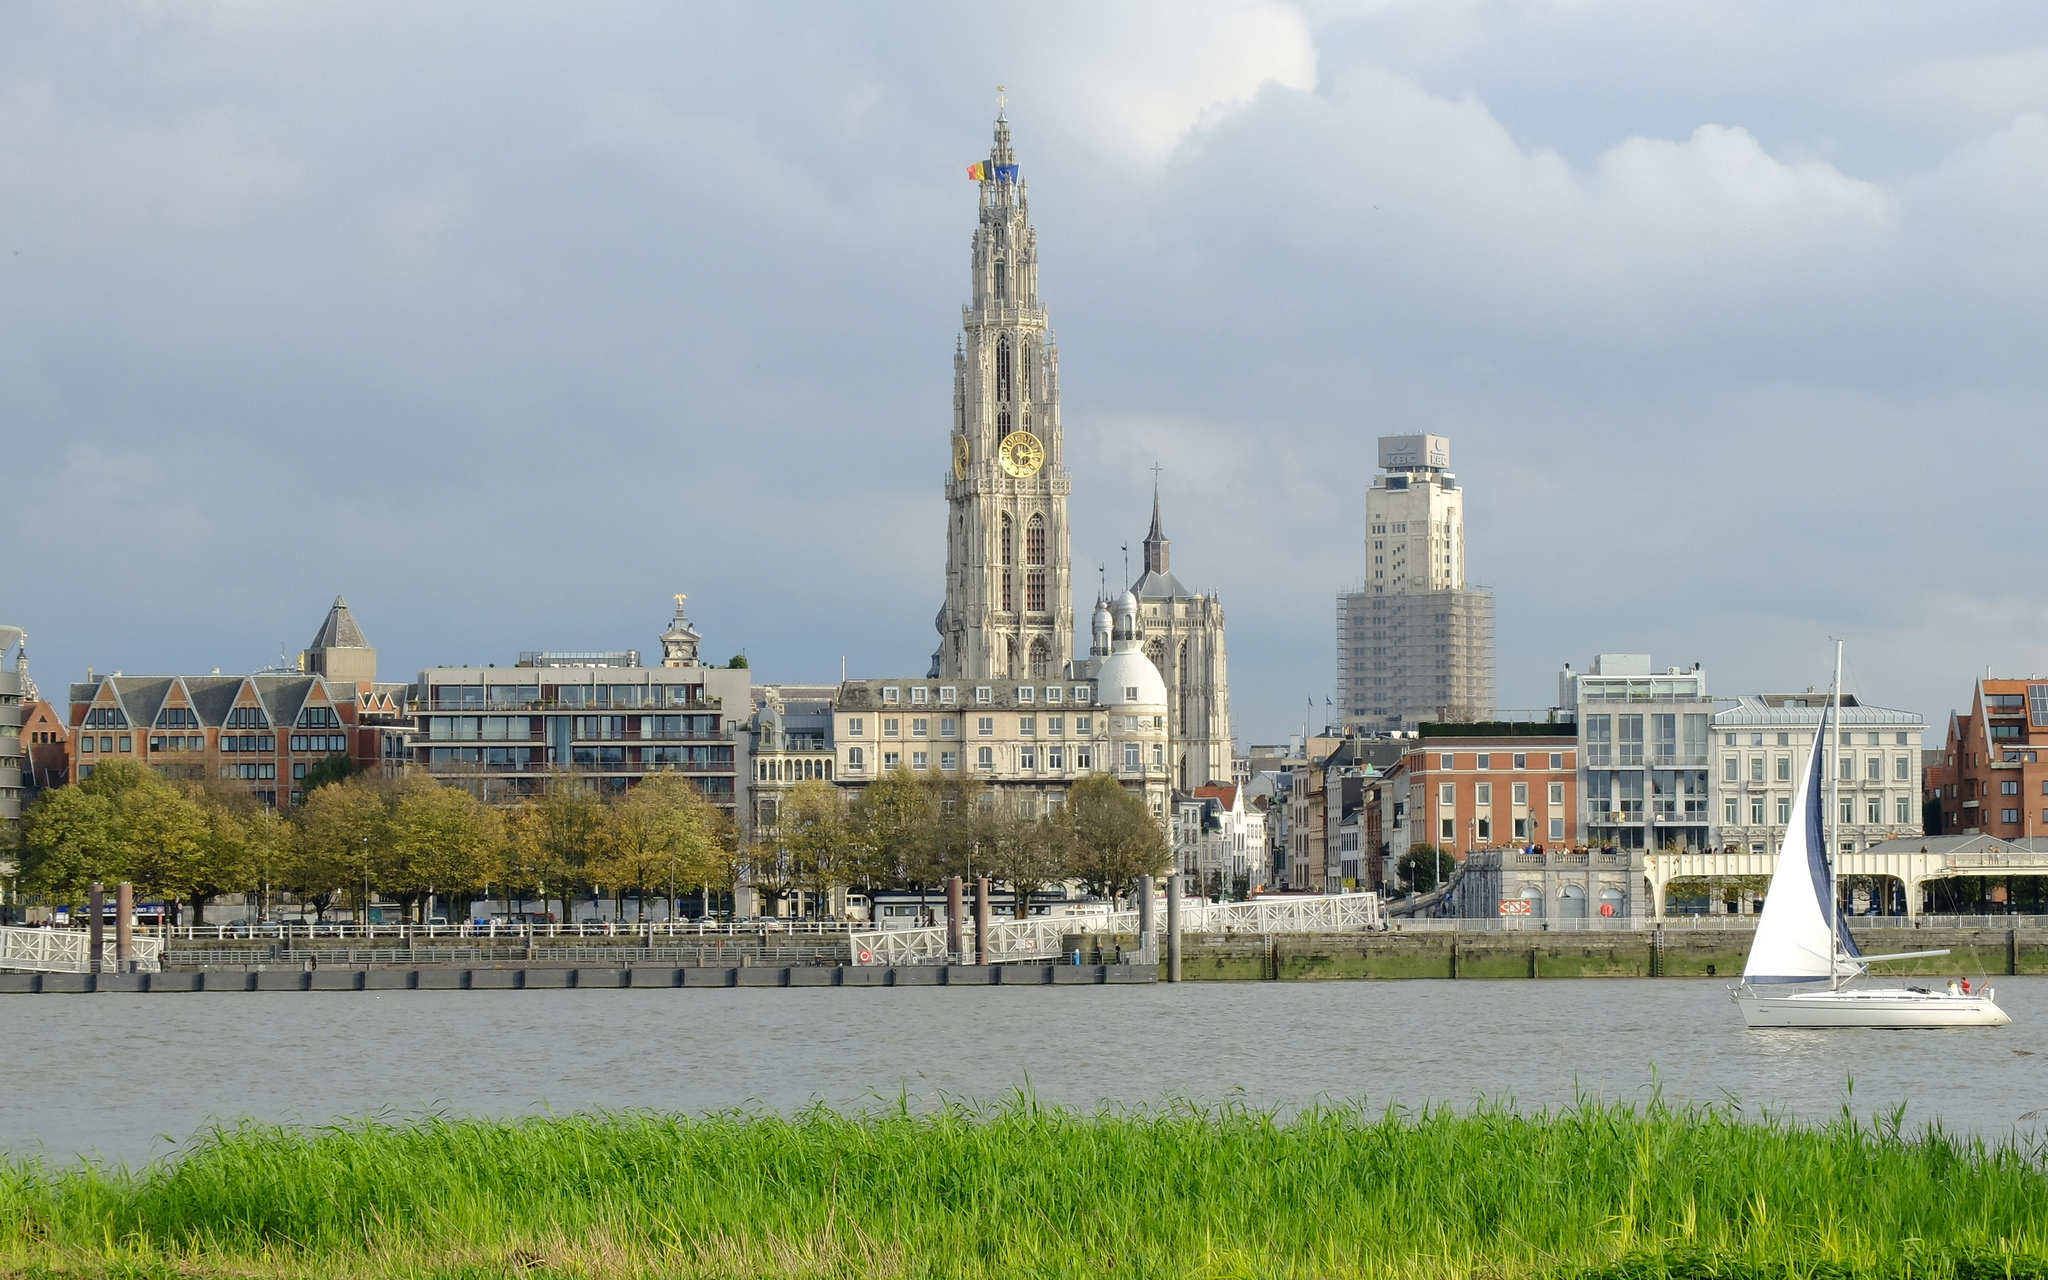 Antwerp skyline with cathedral and Boerentoren |ⒸjgBeachcomber/Flickr